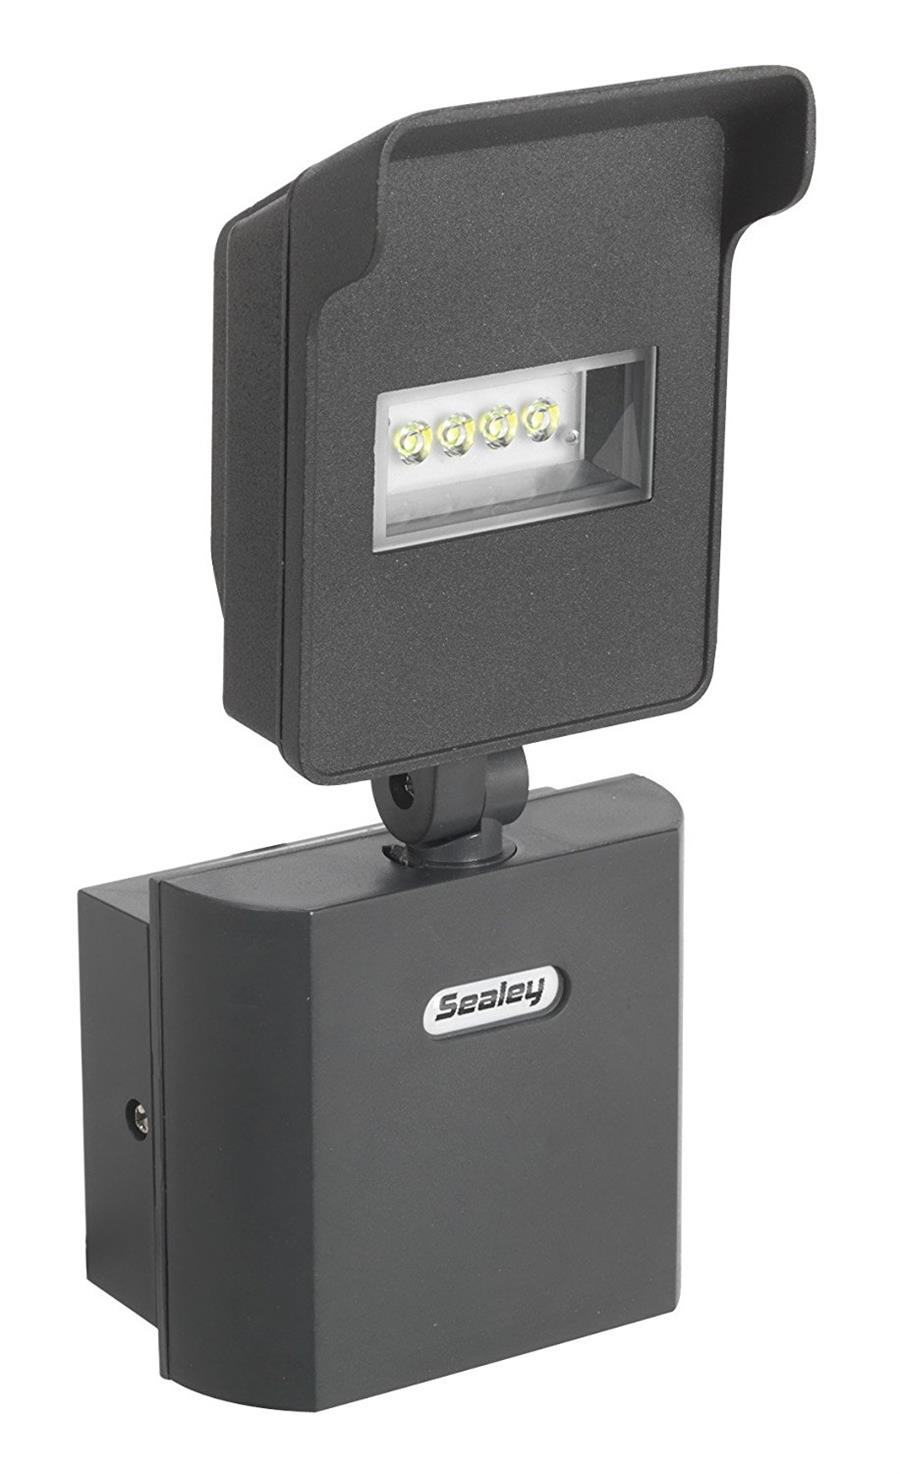 Sealey LED045 10 W LED 230 V Floodlight with Swivel Head and Wall Bracket